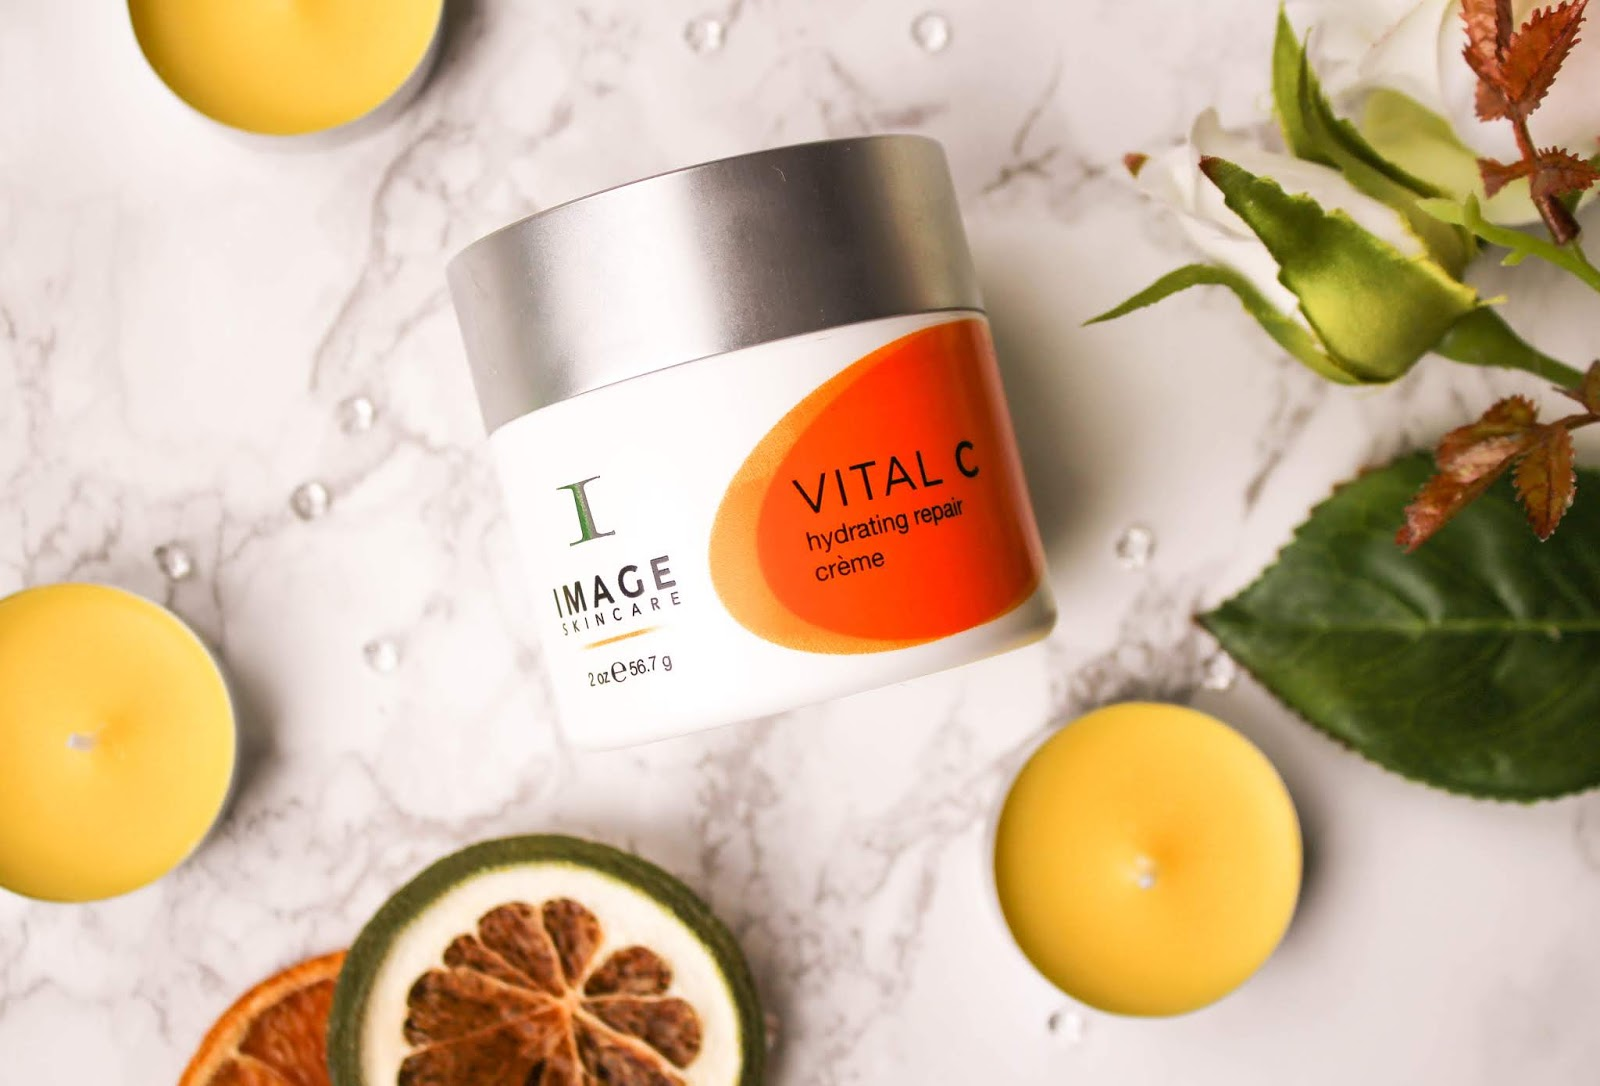 Image Skincare Vital C Hydrating Repair Creme Review